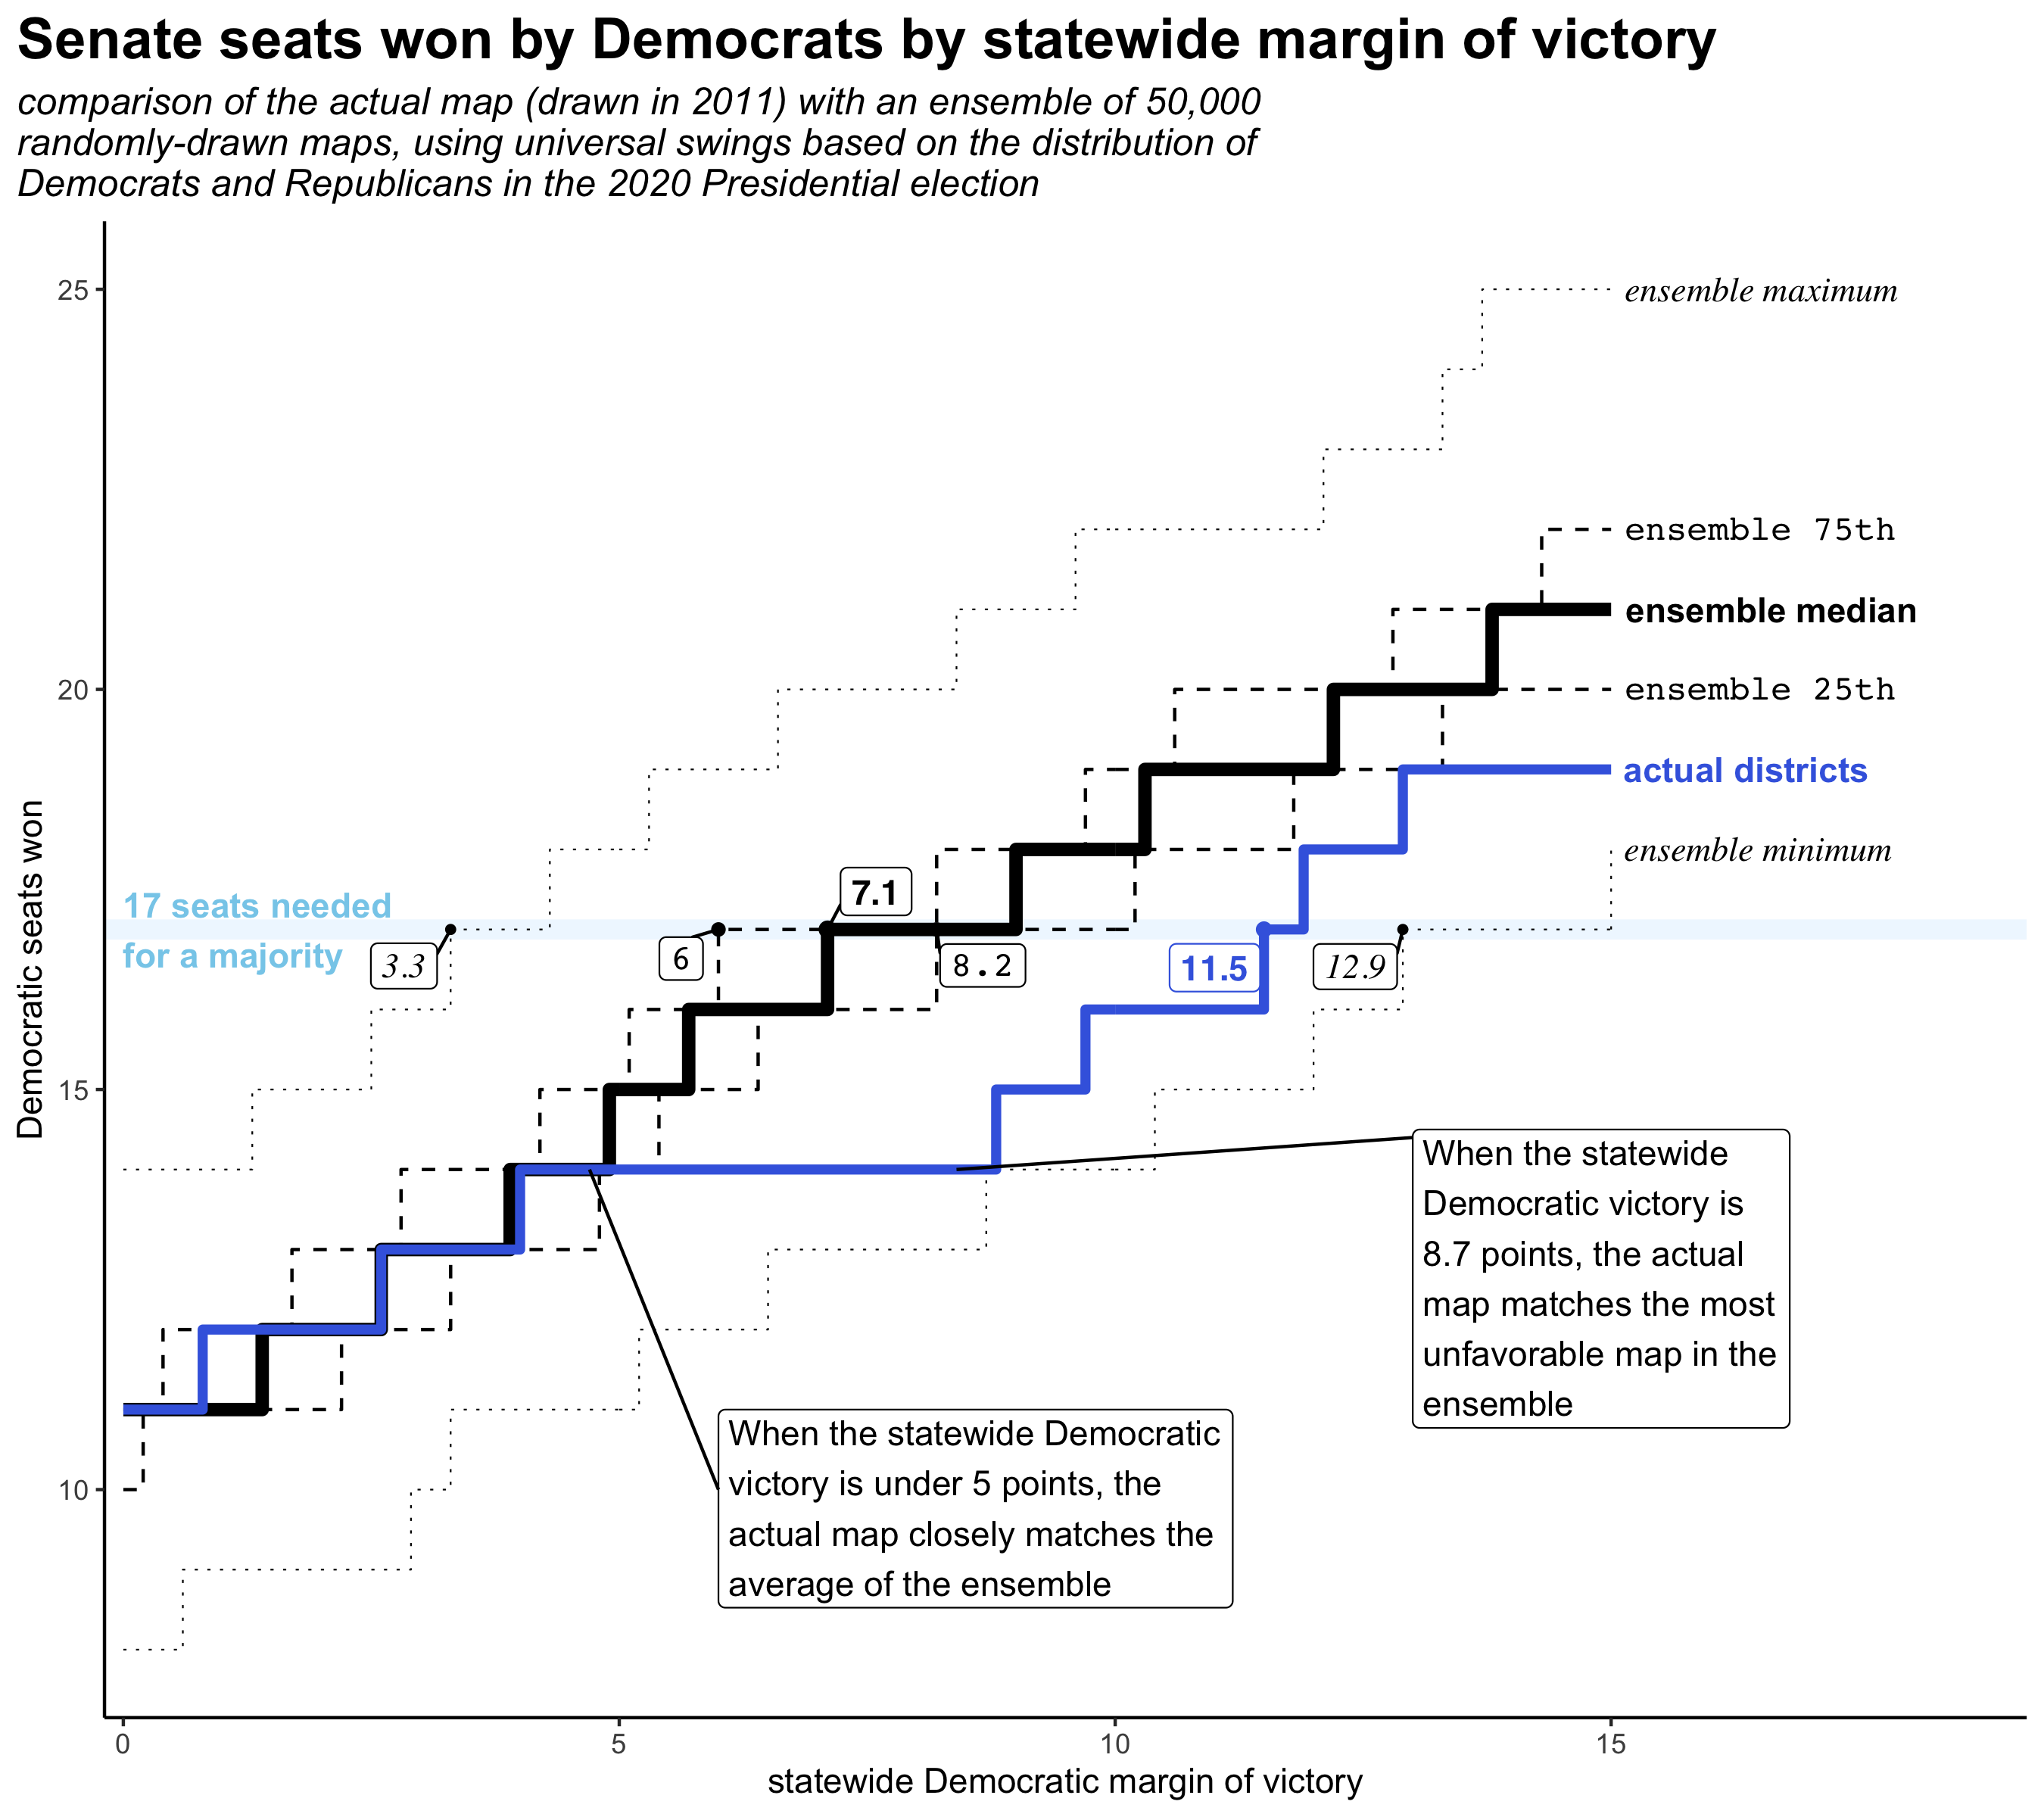 comparison of seats won by Democrats at different statewide margin swings, in the actual maps and the ensemble